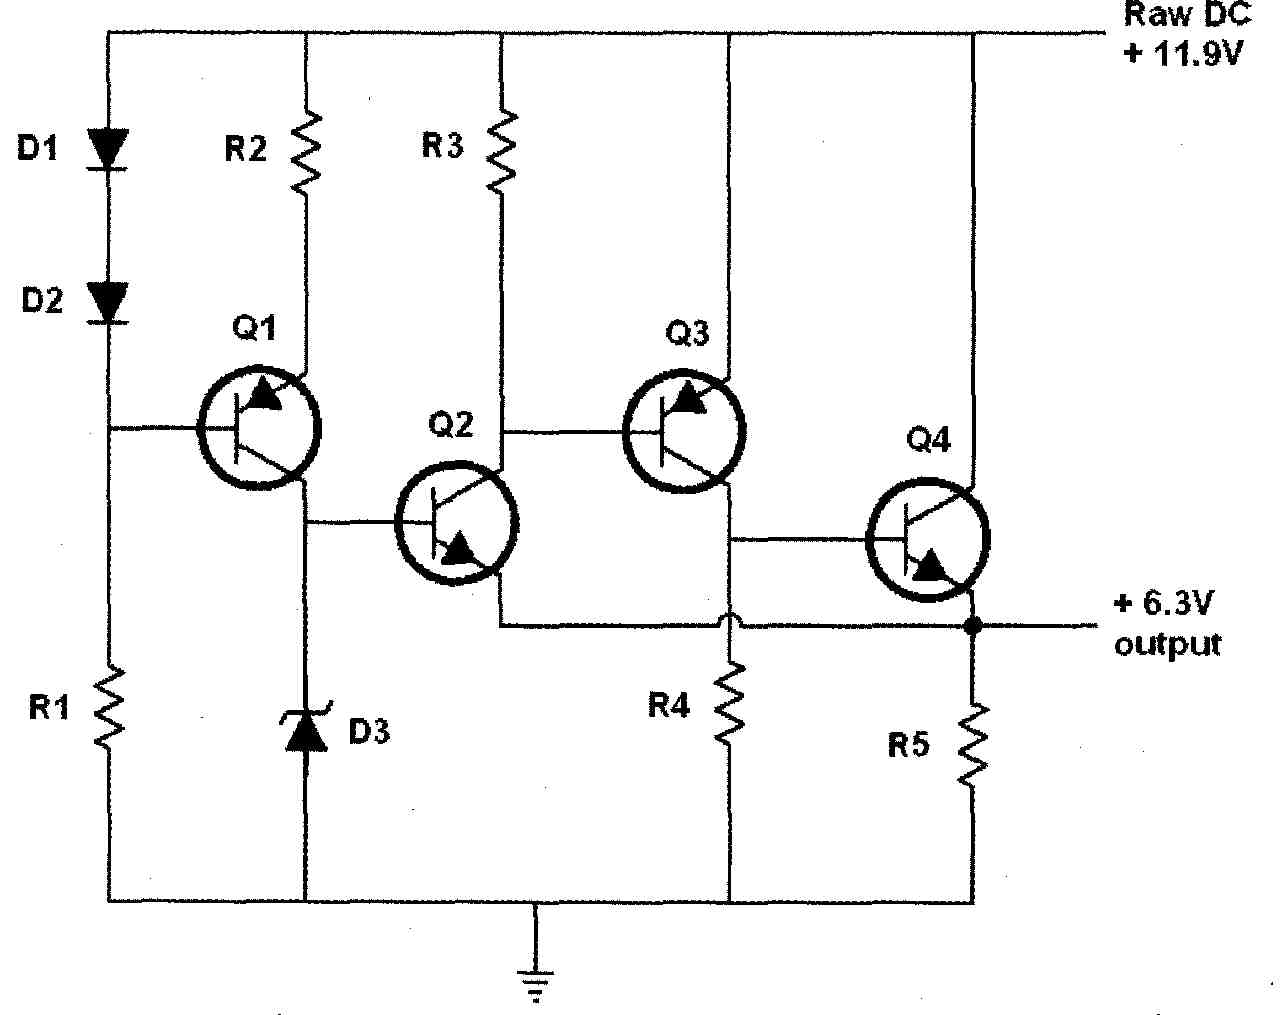 Regulated Power Supply For Vacuum Tube Valve Electronics Projects 300v Variable High Voltage Circuit Schematic Figure 4 Heater Originally Published In Elektuur Dutch Version Of Elektor Raw Dc Comes From A 2209v 50va Transformer 250v 10a Bridge